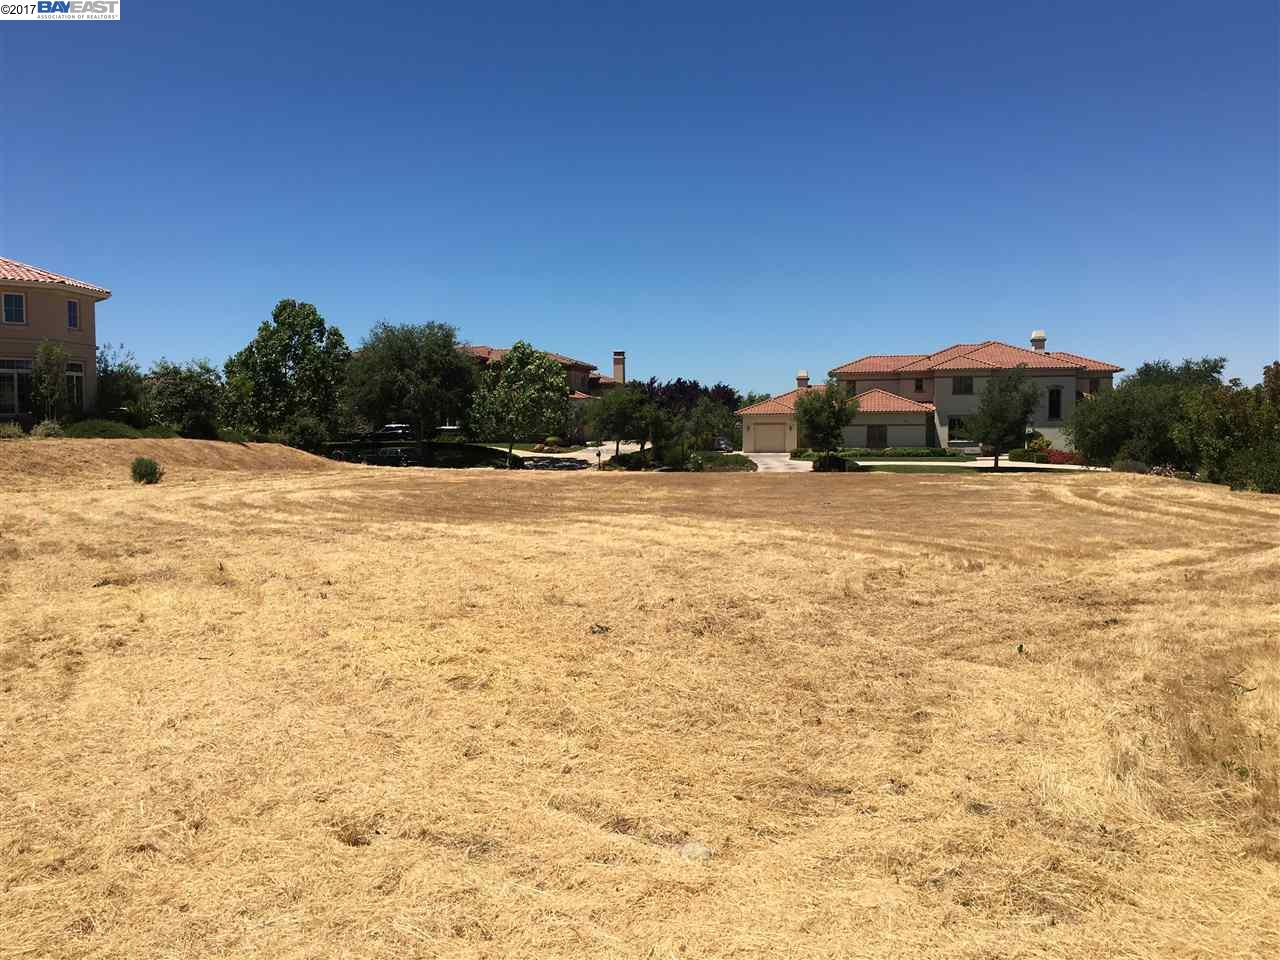 Additional photo for property listing at 1476 Germano Way 1476 Germano Way Pleasanton, California 94566 Estados Unidos